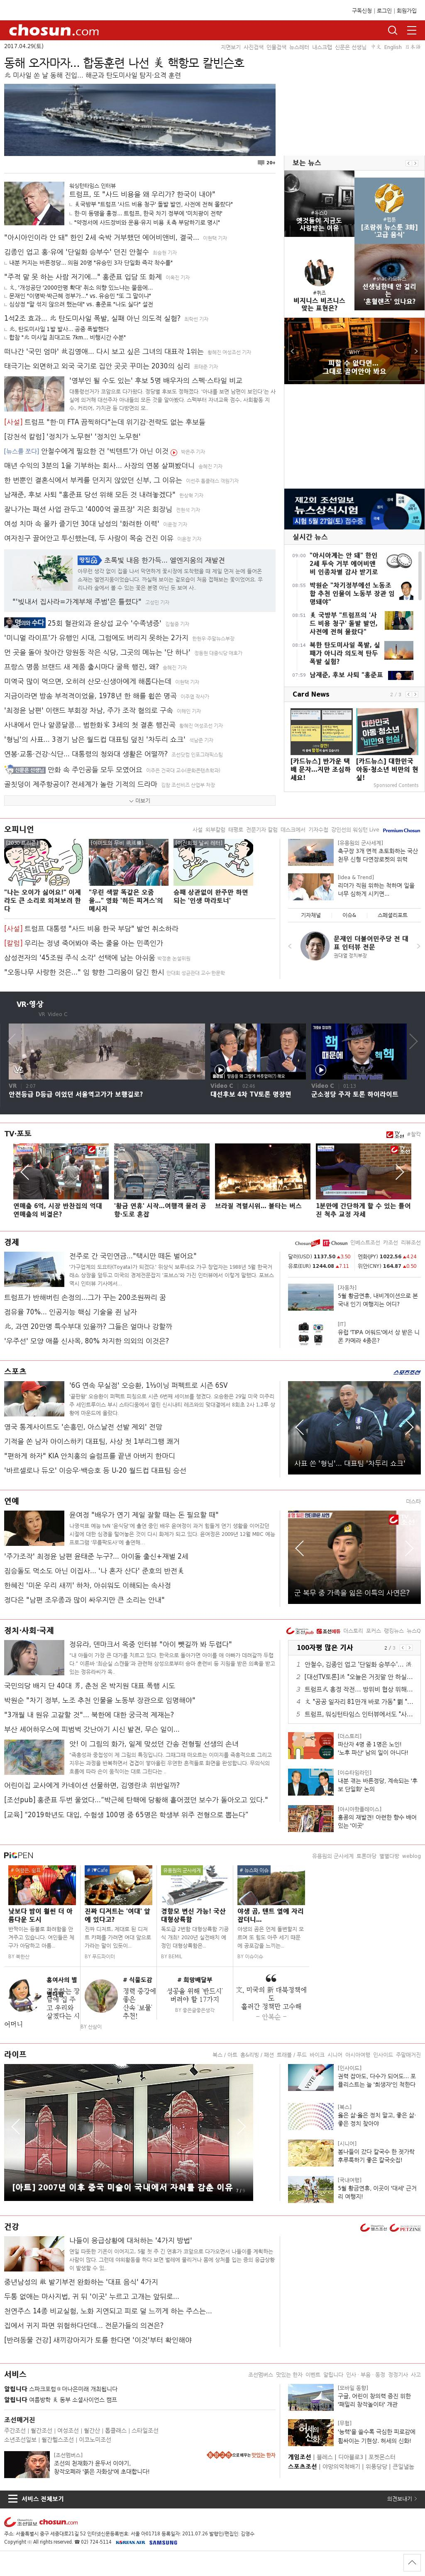 chosun.com at Saturday April 29, 2017, 11:04 a.m. UTC